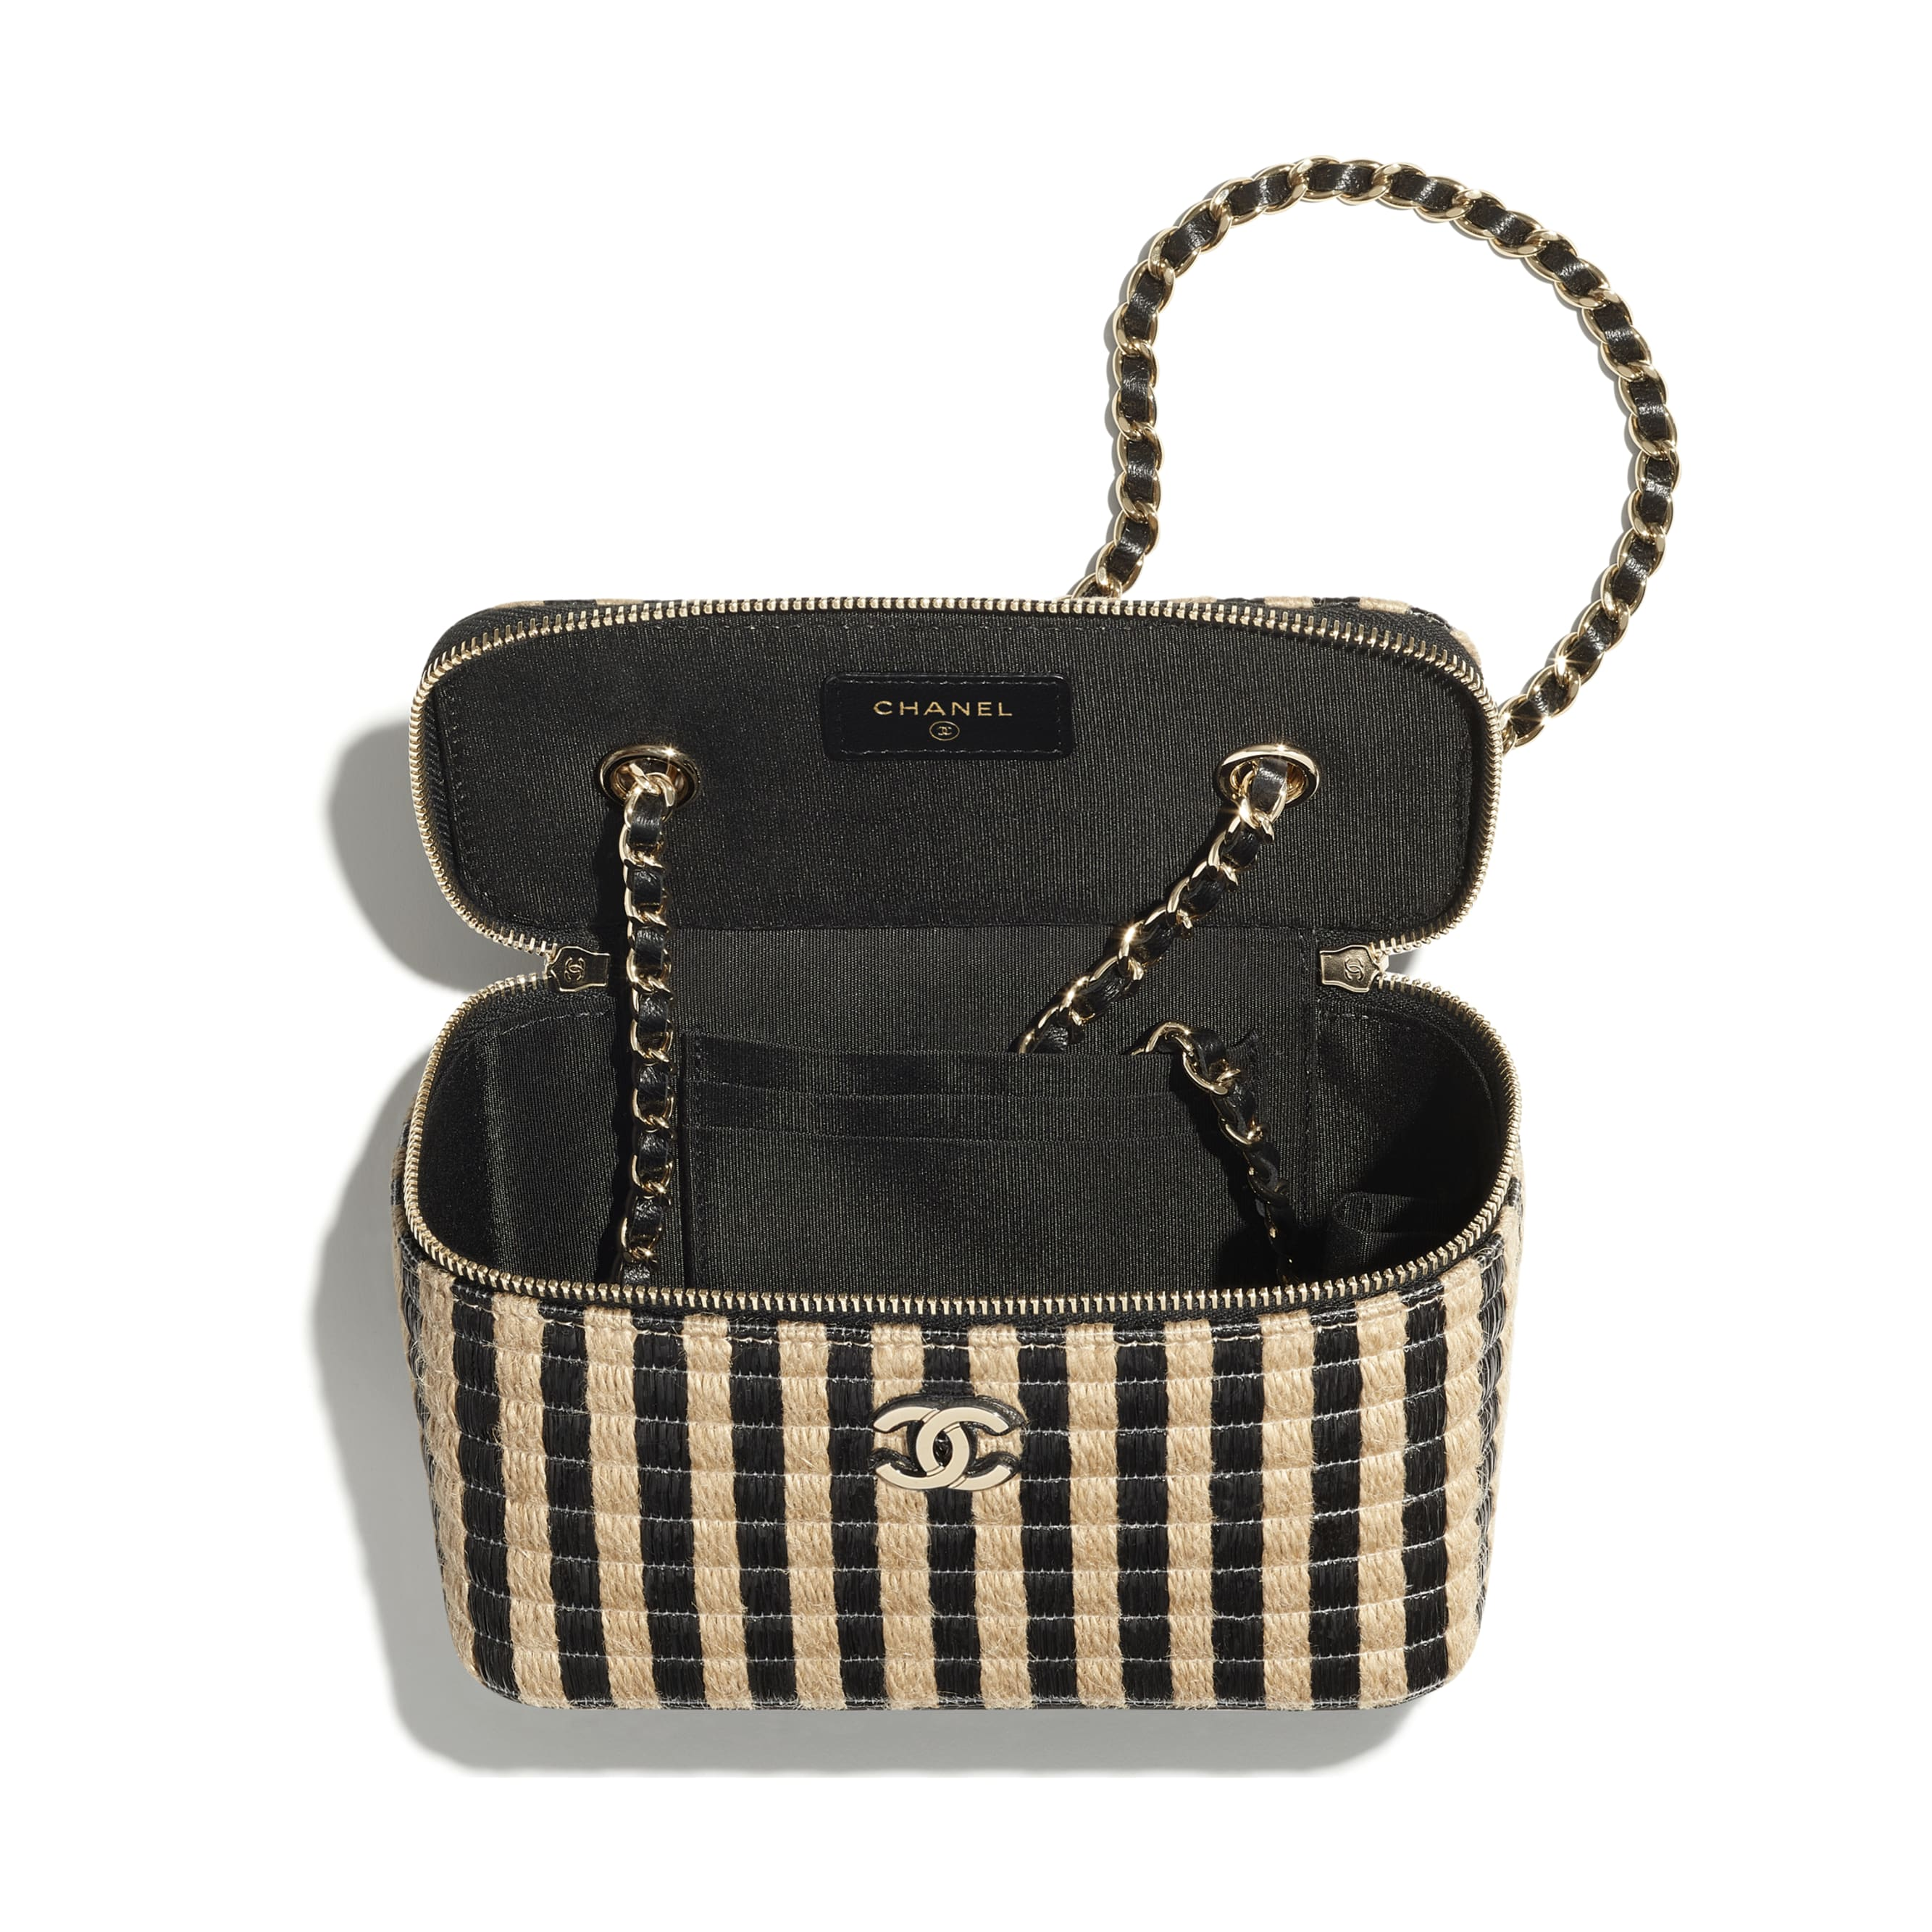 Vanity with Chain - Black & Beige - Raffia, Jute Thread & Gold-Tone Metal - CHANEL - Alternative view - see standard sized version